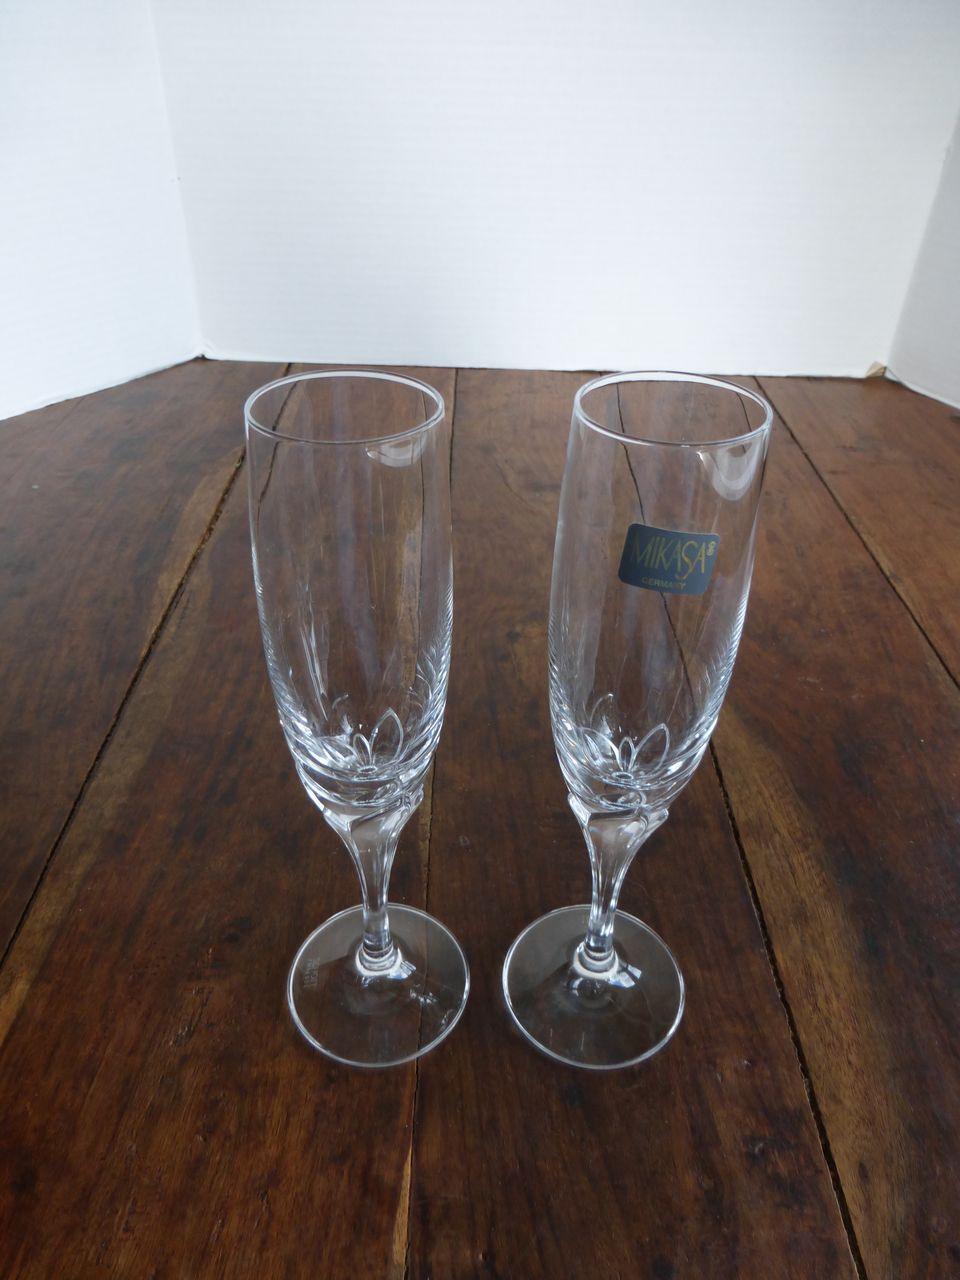 Vintage Mikasa Schott Zwiesel Crystal Petal Stem Champagne Flutes Pair From Historique On Ruby Lane